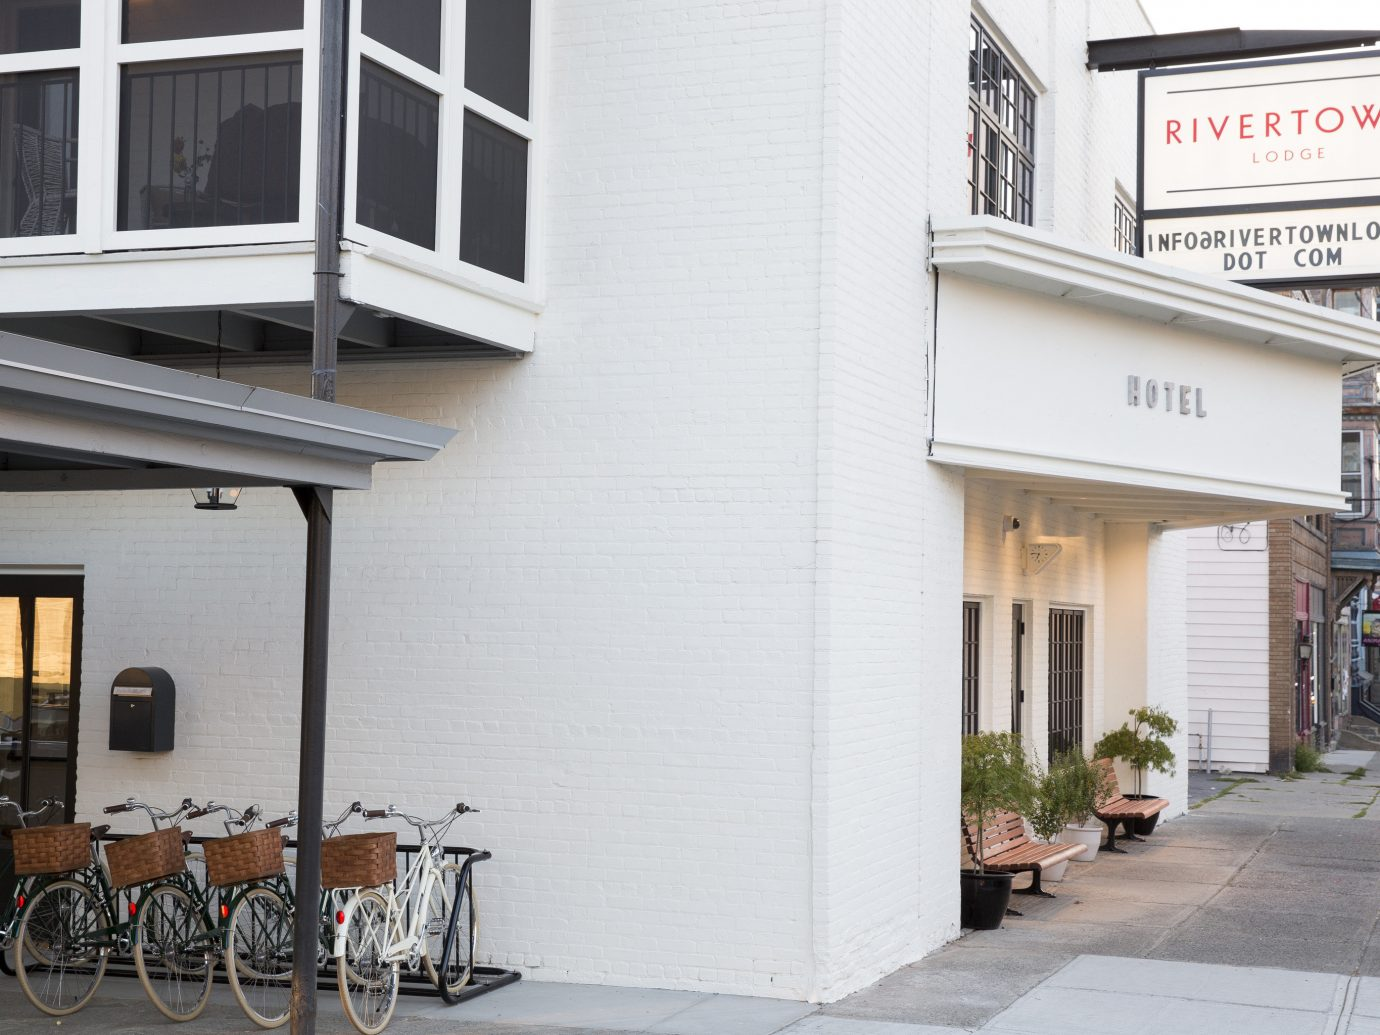 Hotels Style + Design Trip Ideas building outdoor bicycle property parked home facade interior design restaurant porch scooter